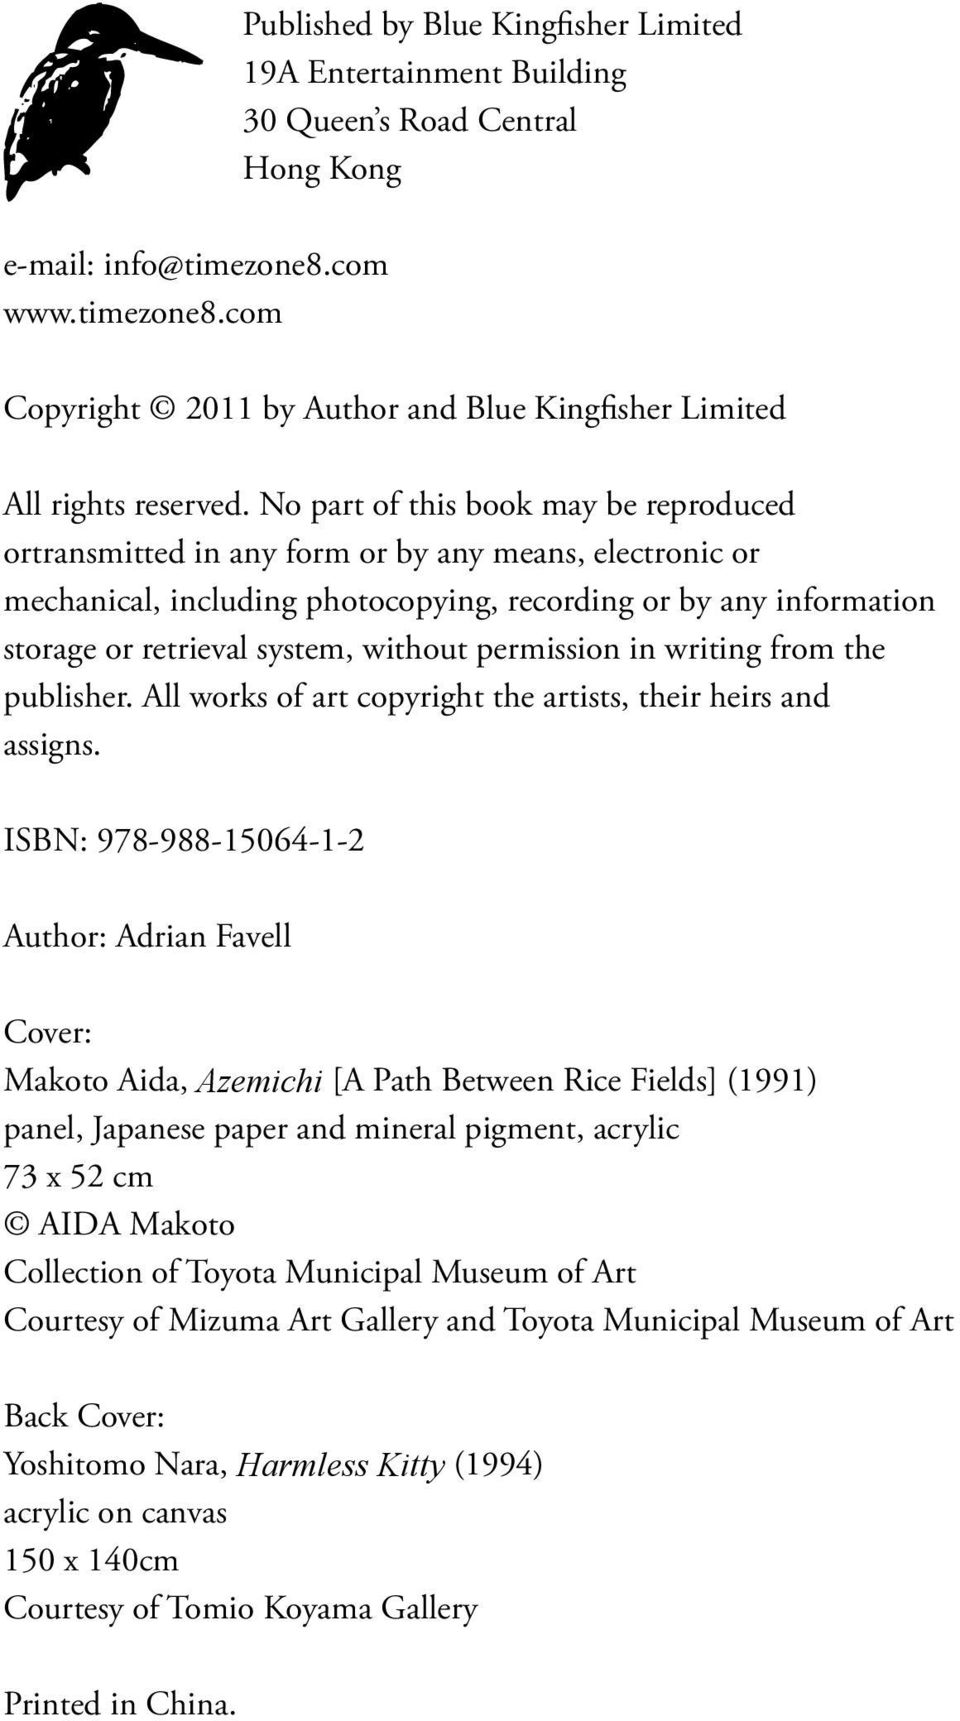 without permission in writing from the publisher. All works of art copyright the artists, their heirs and assigns.